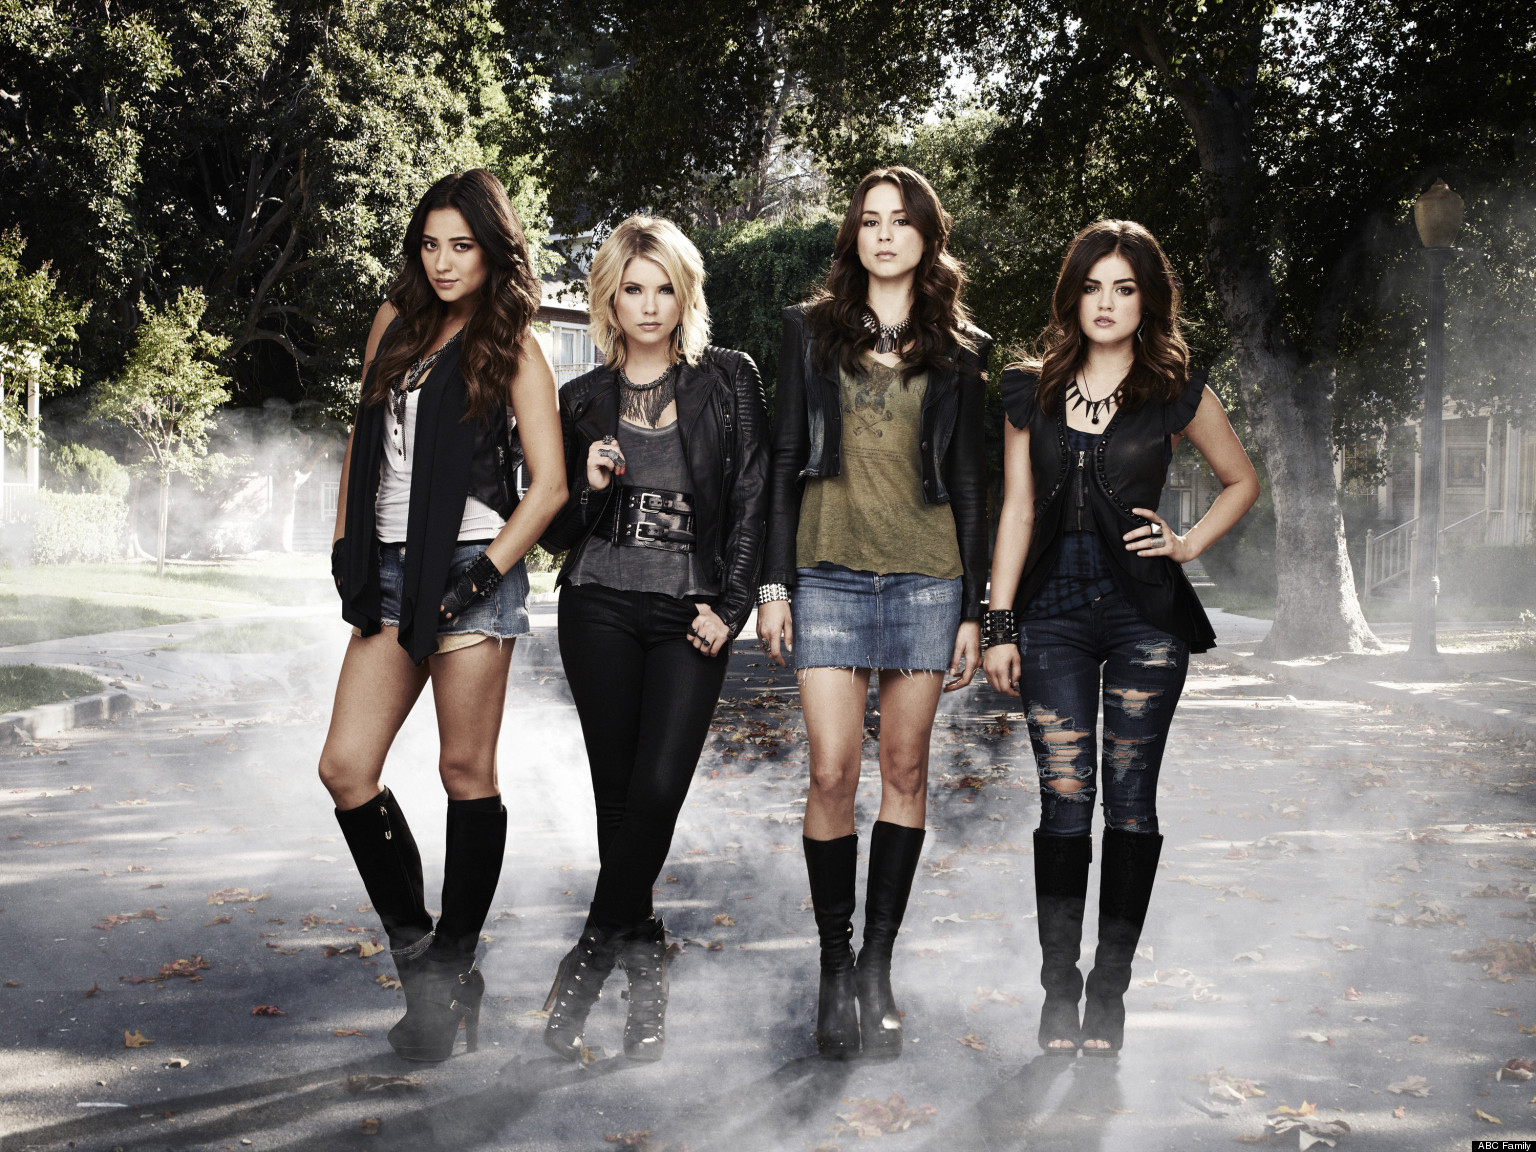 SHAY MITCHELL, ASHLEY BENSON, TROIAN BELLISARIO, LUCY HALE